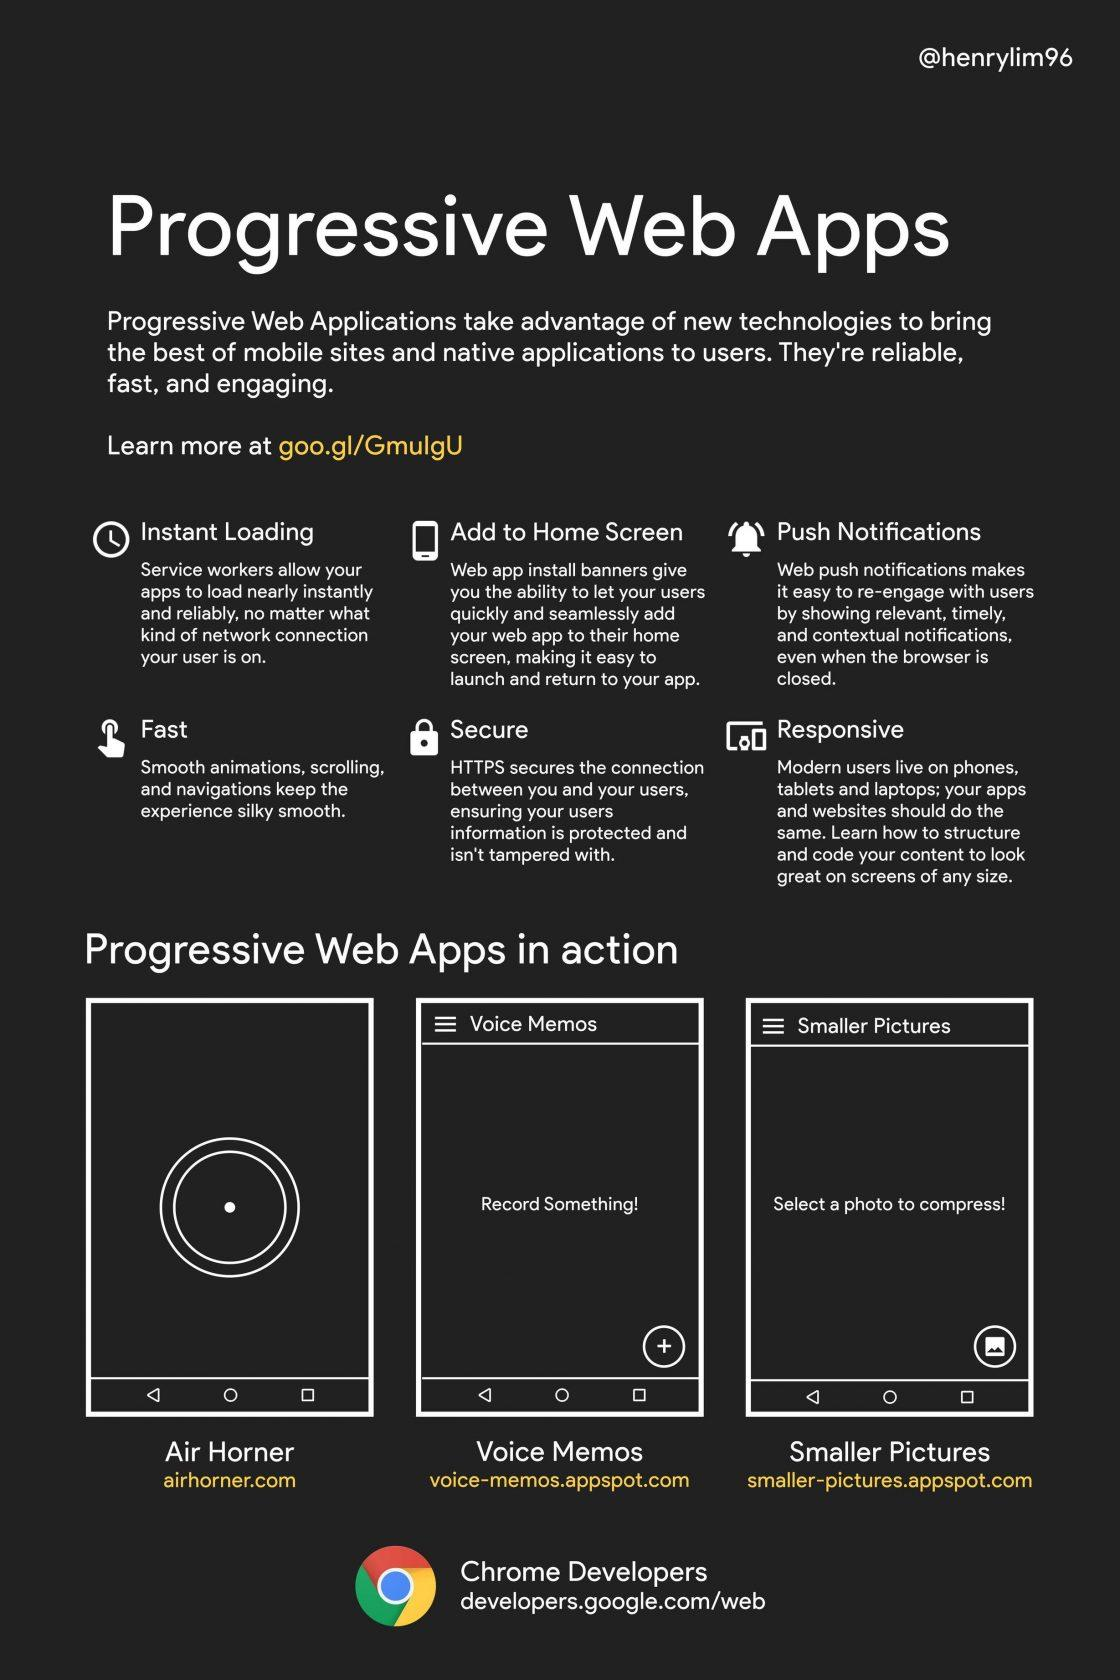 google progressive web apps infographic